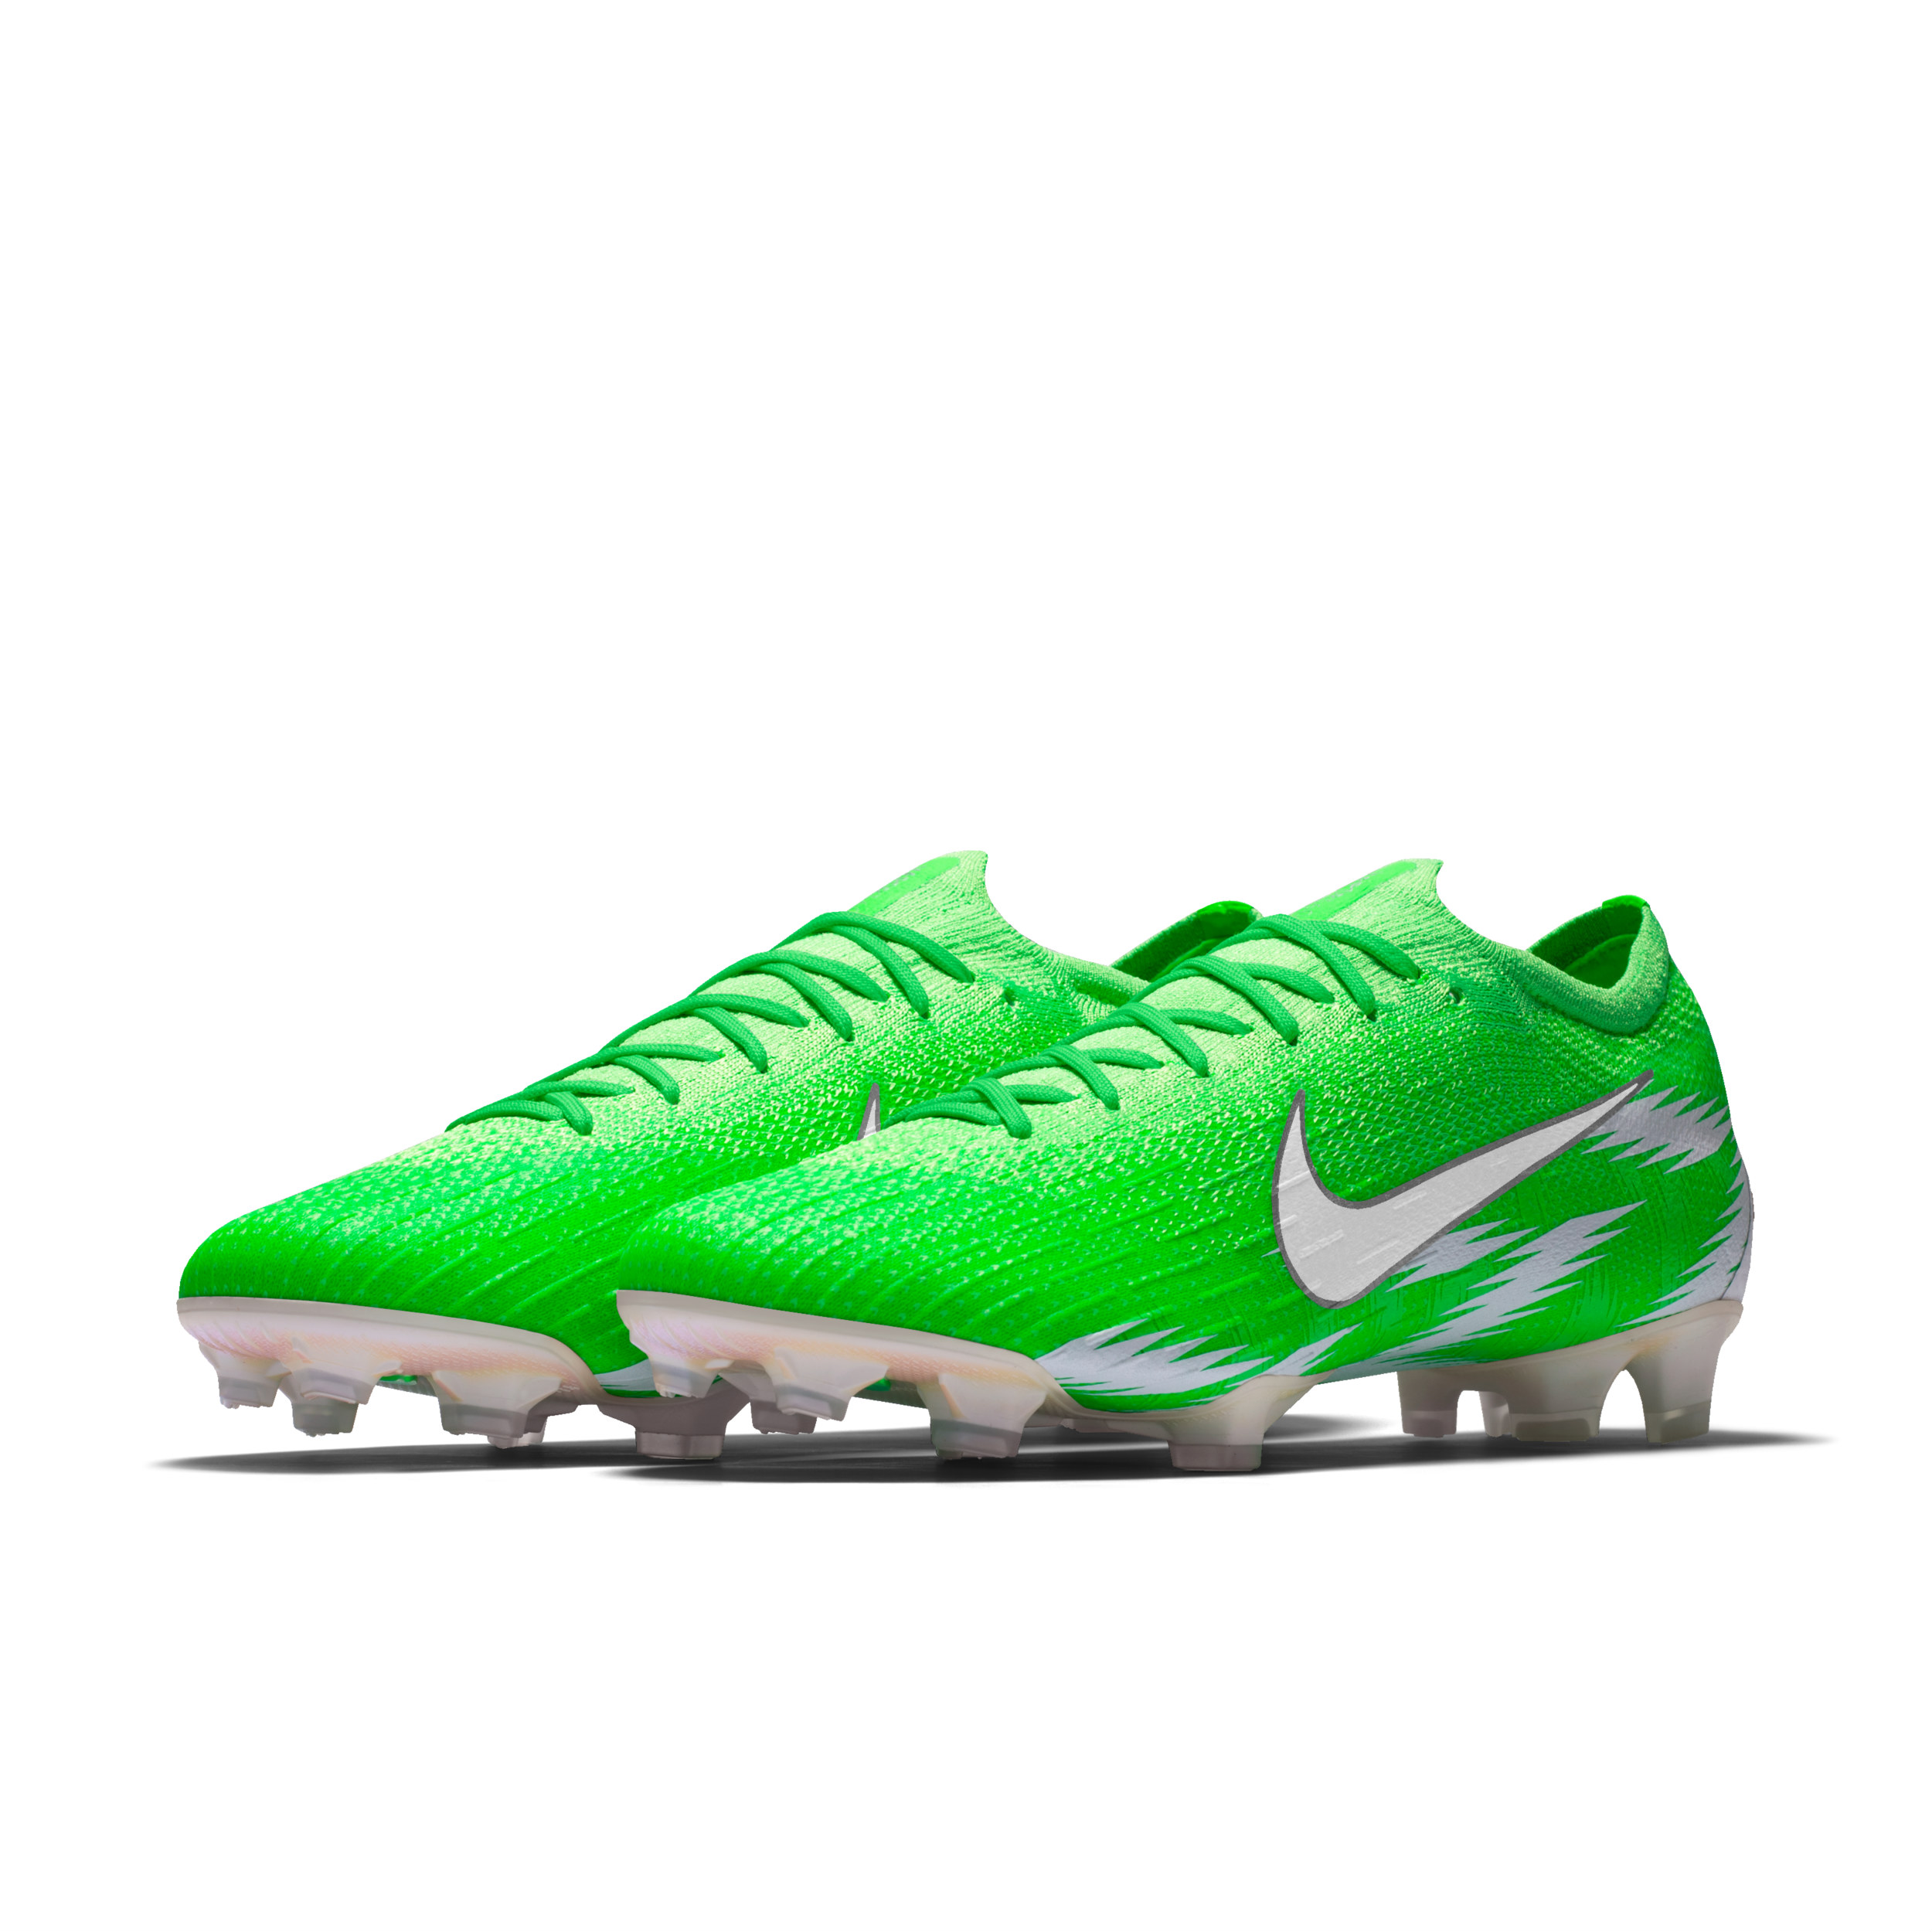 best website 8bc8a 3432a Nike Mercurial Vapor 360 Elite FG Naija Premium iD - Green ...